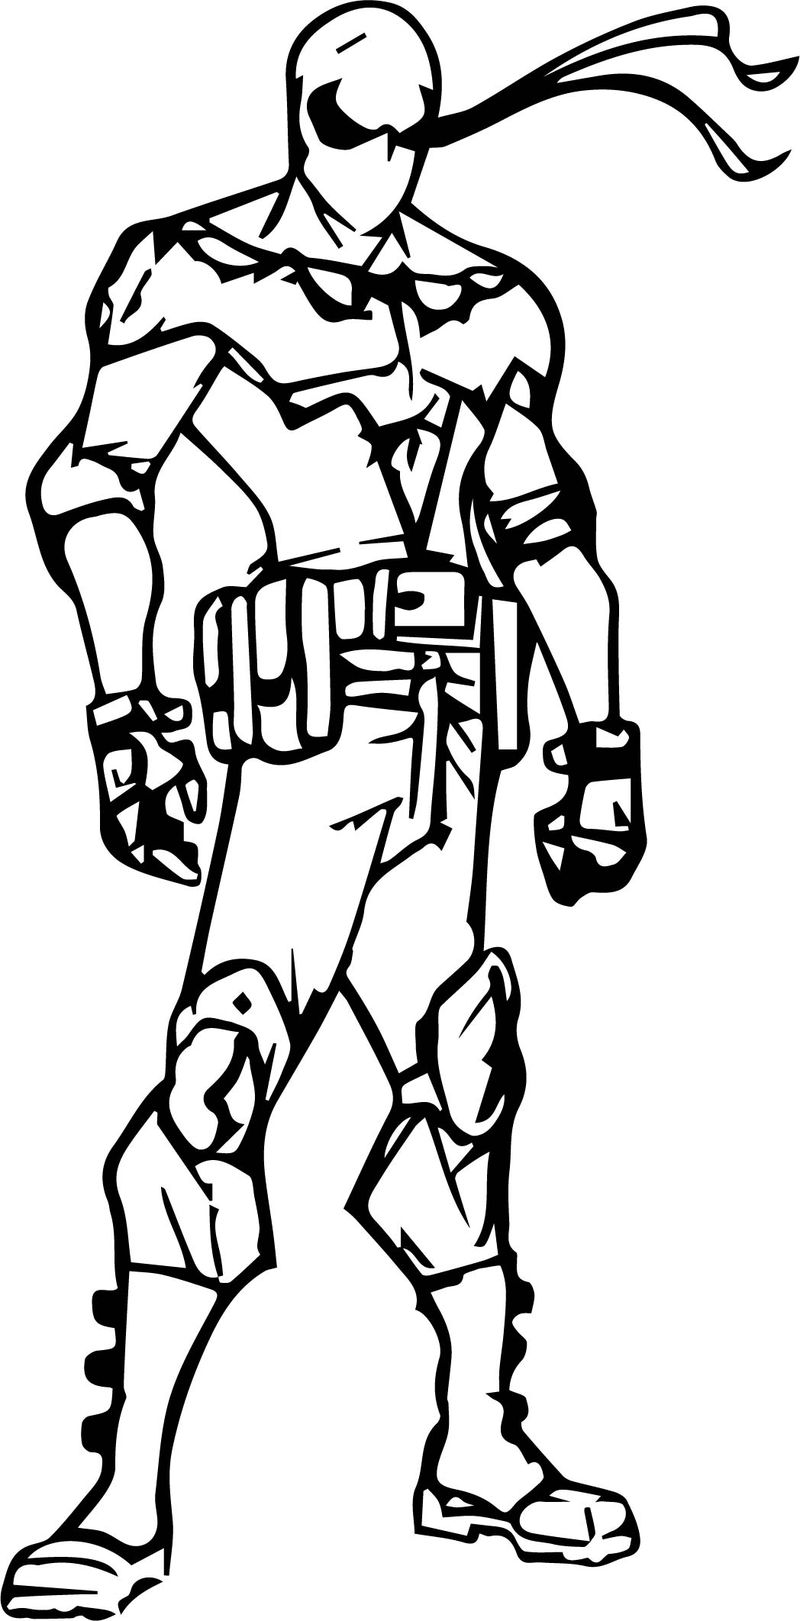 Night Runner Character Design Coloring Page